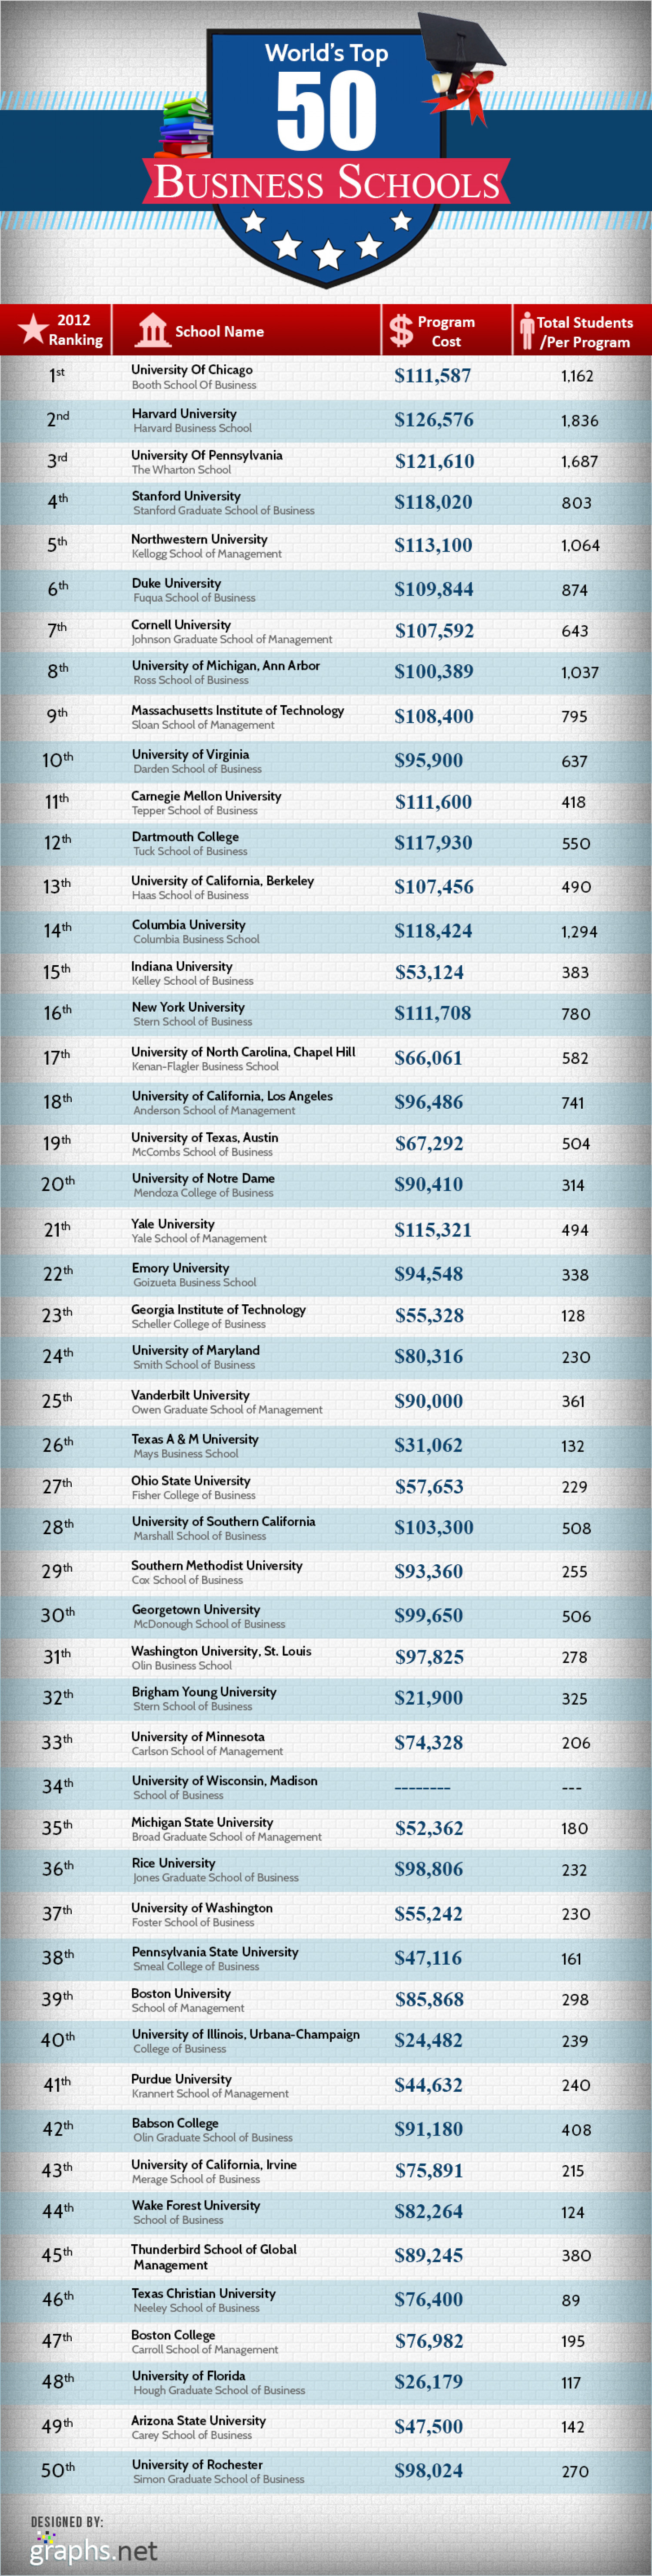 List of world top 50 business schools Infographic